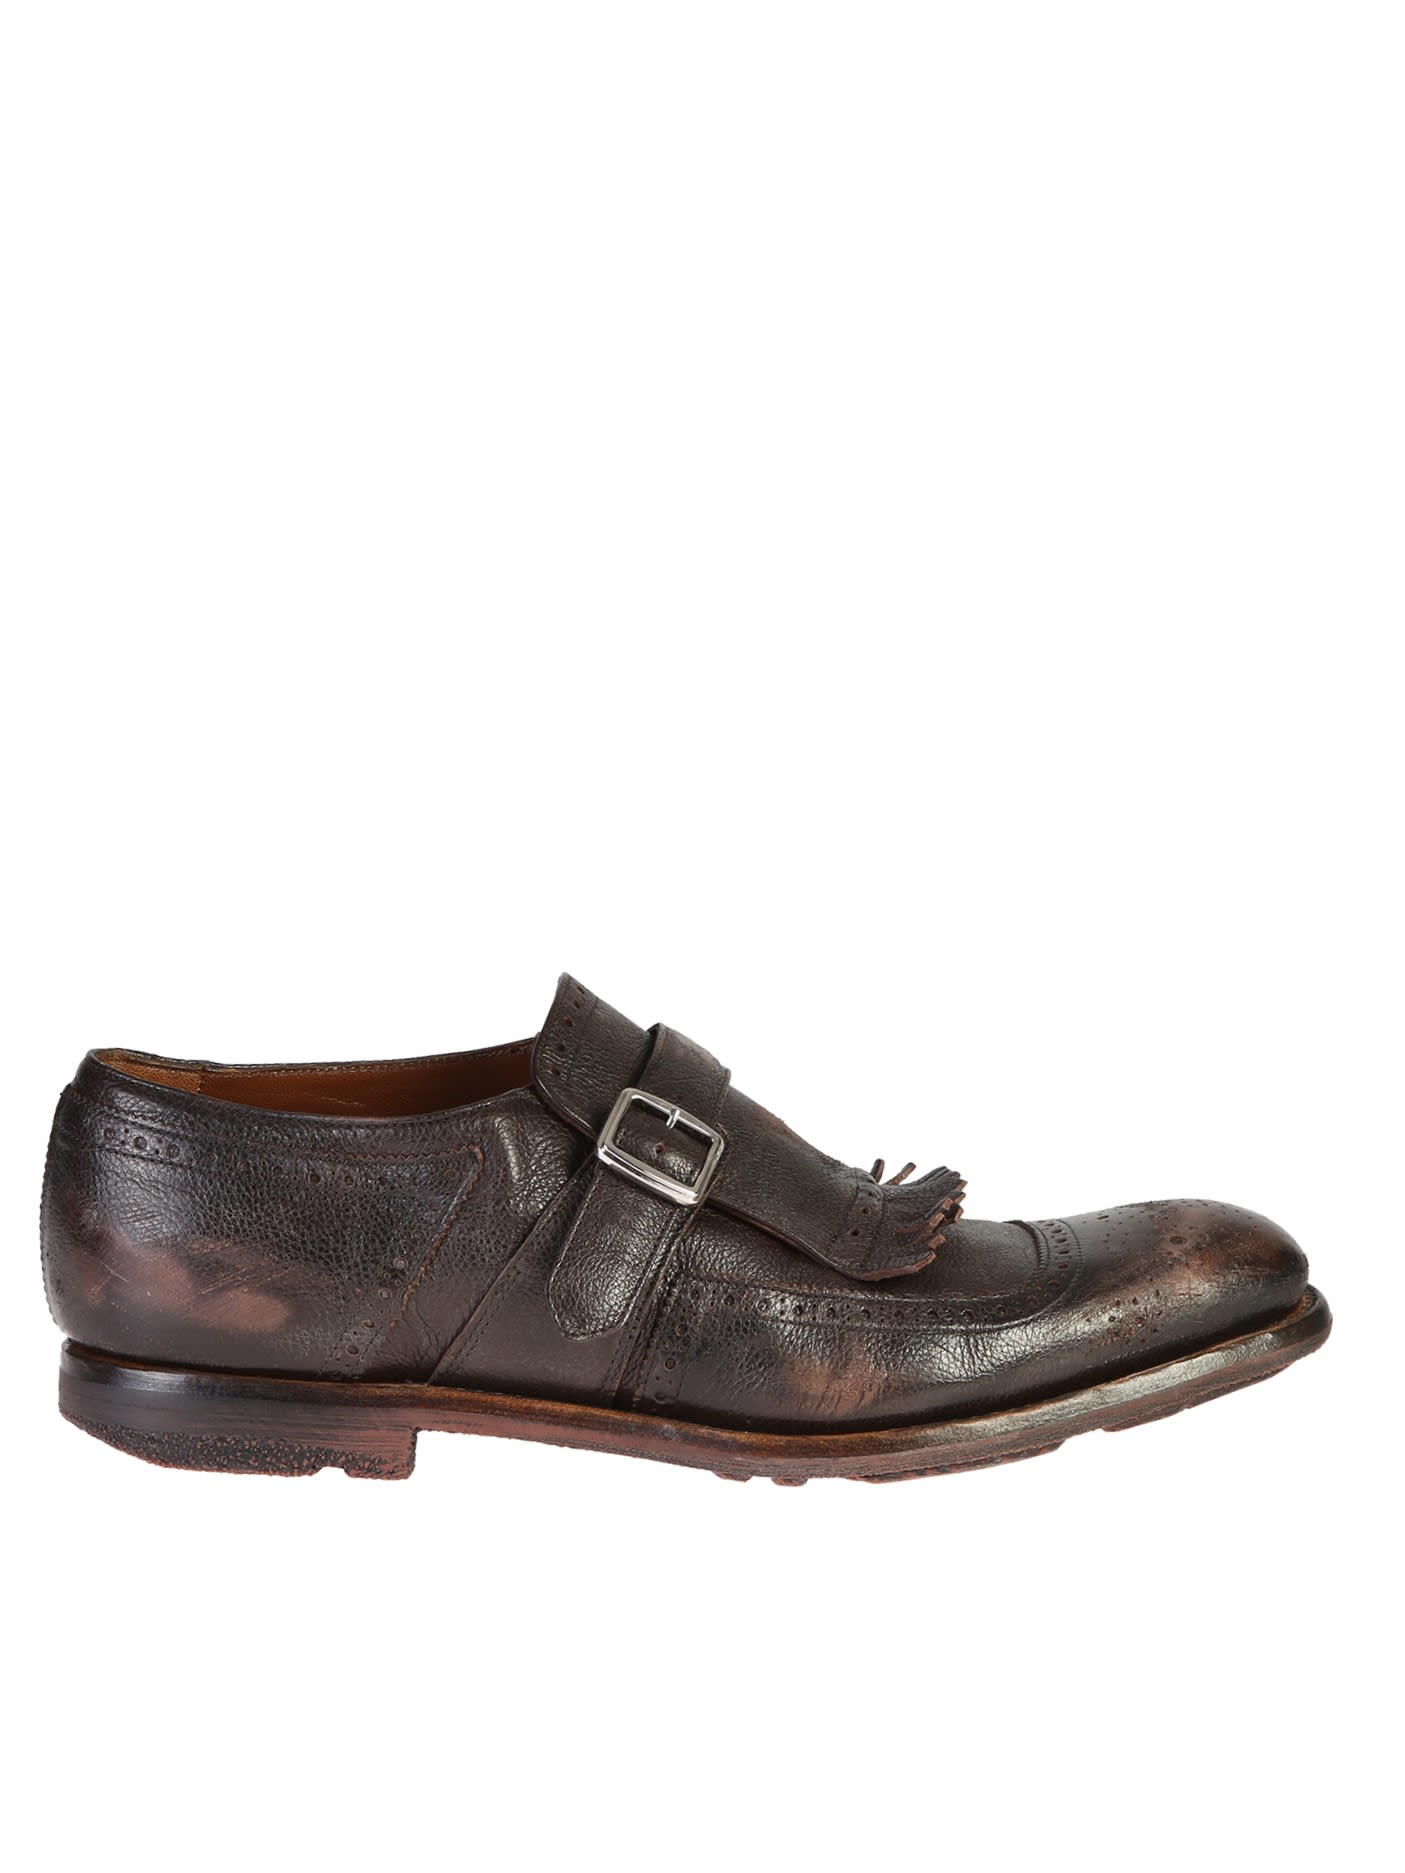 Church's Loafers \u0026 Boat Shoes   italist